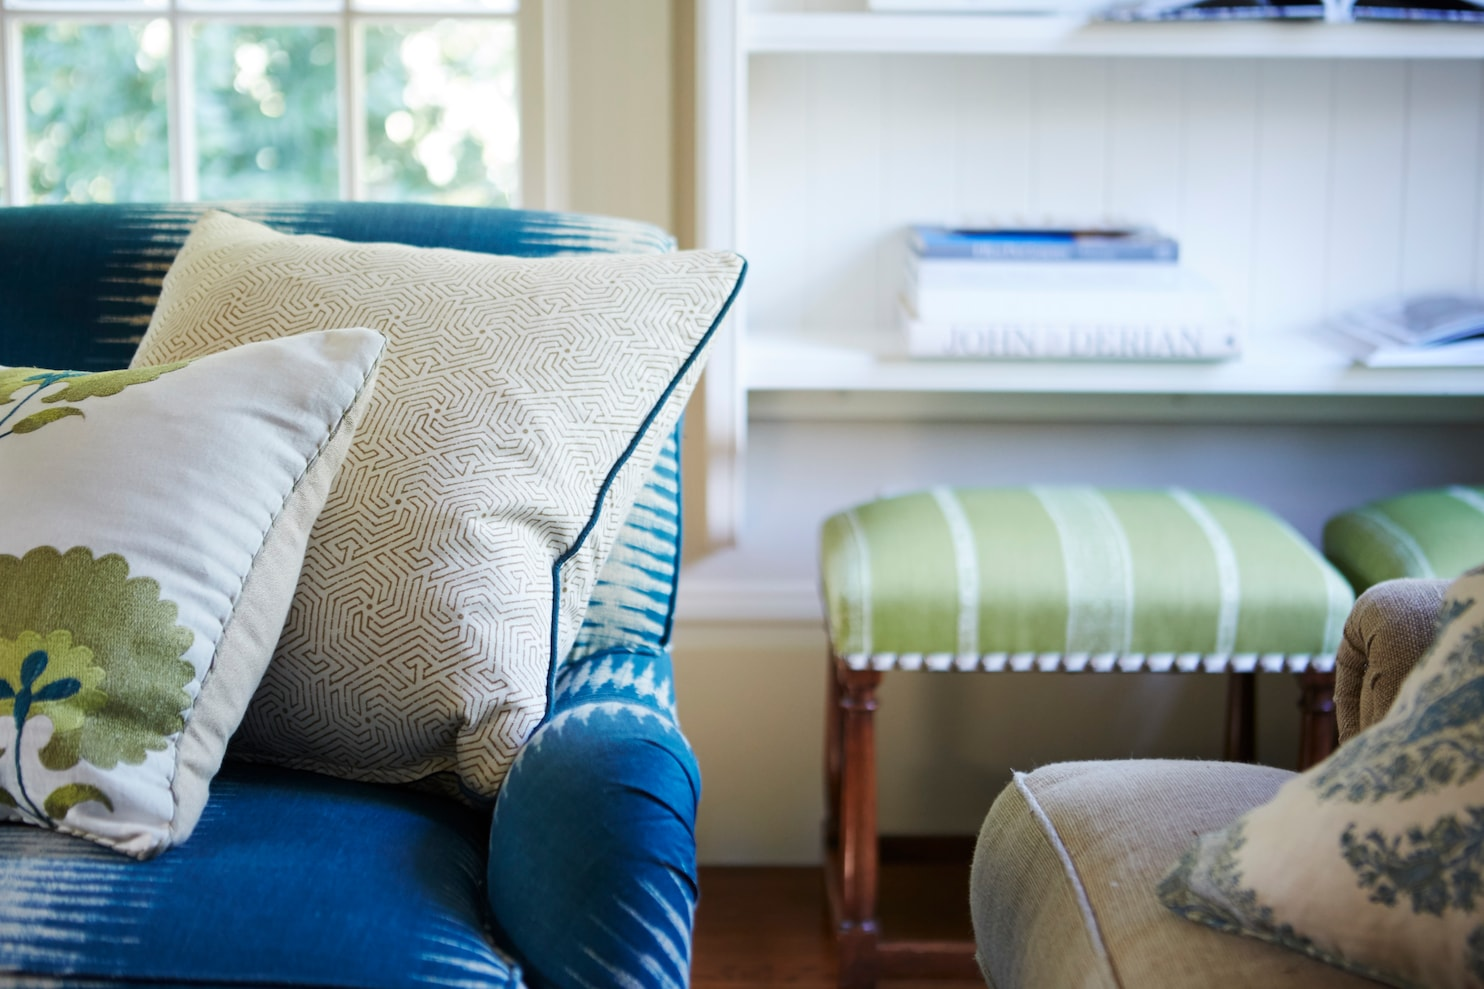 Big Sofa Back Cushions Rules For Throw Pillows That Mountain On Your Bed Is Probably